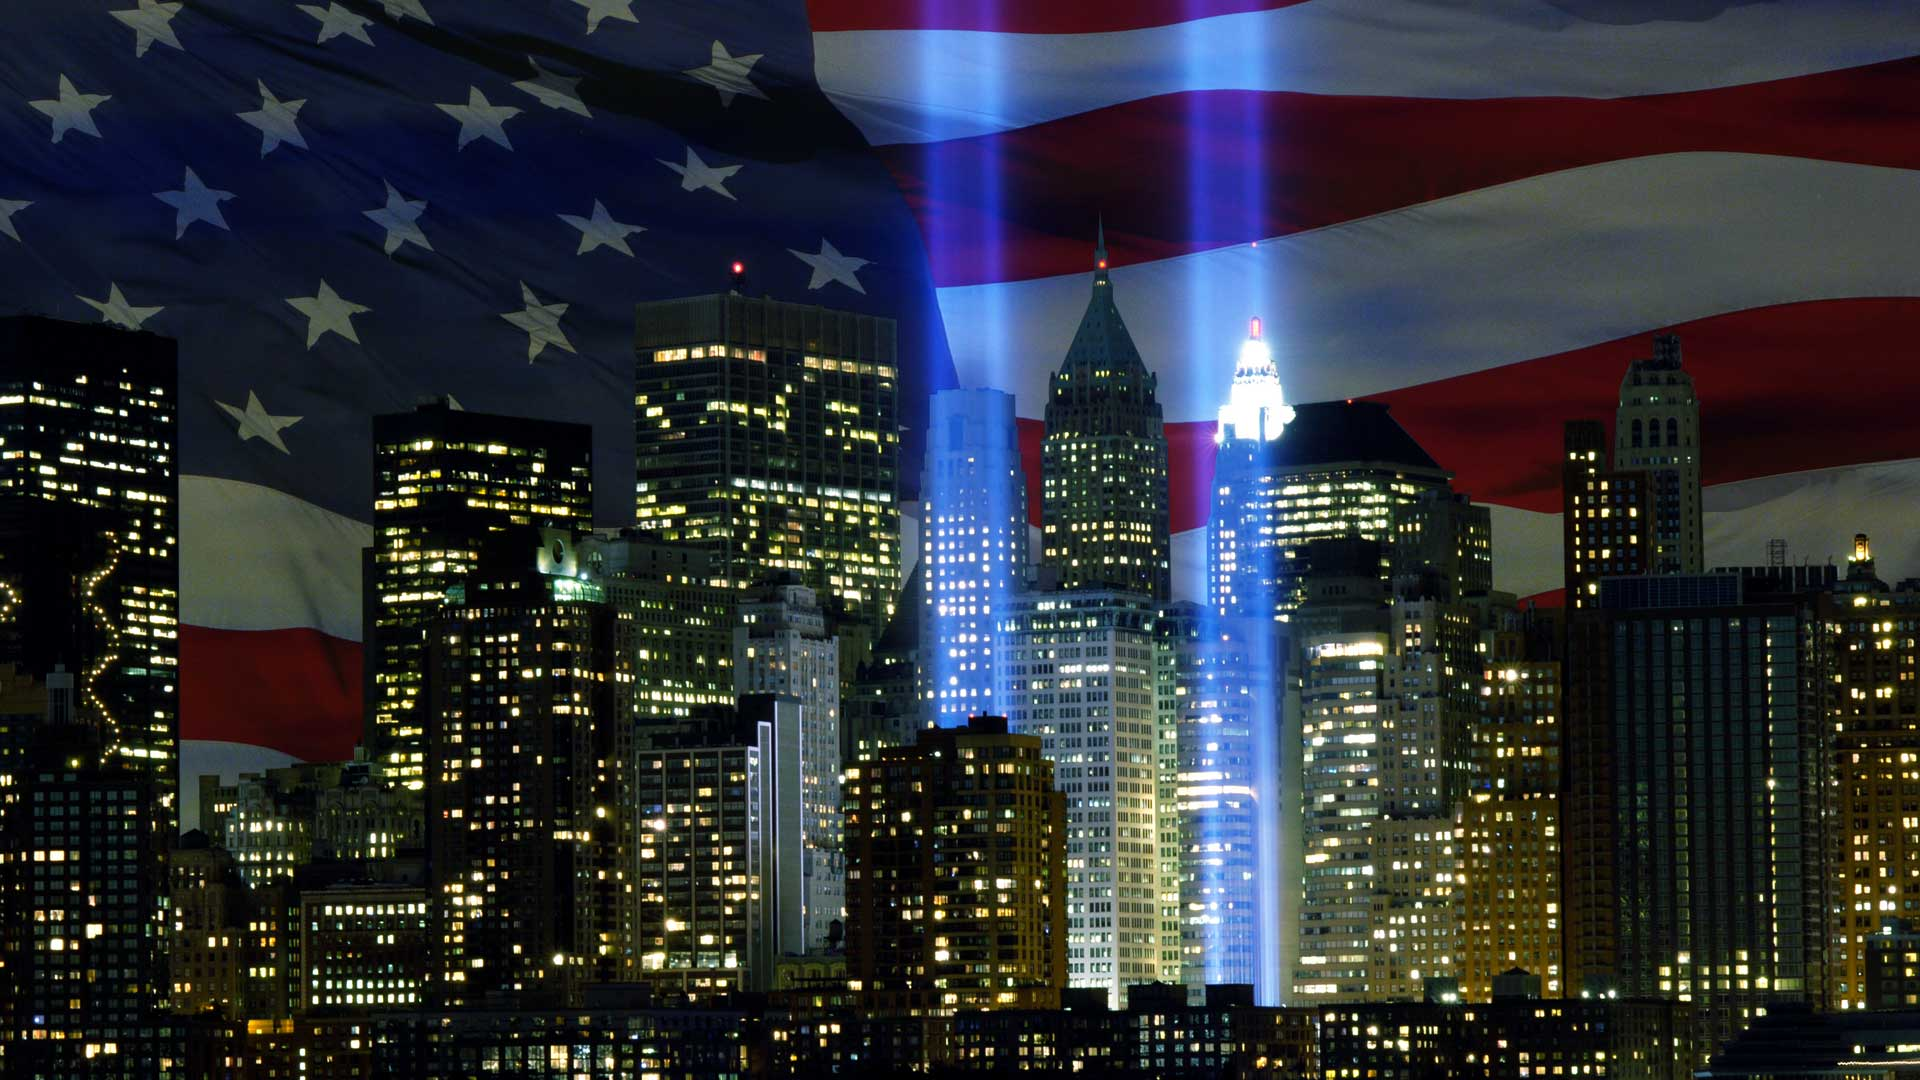 In memory of September 11th, 2001